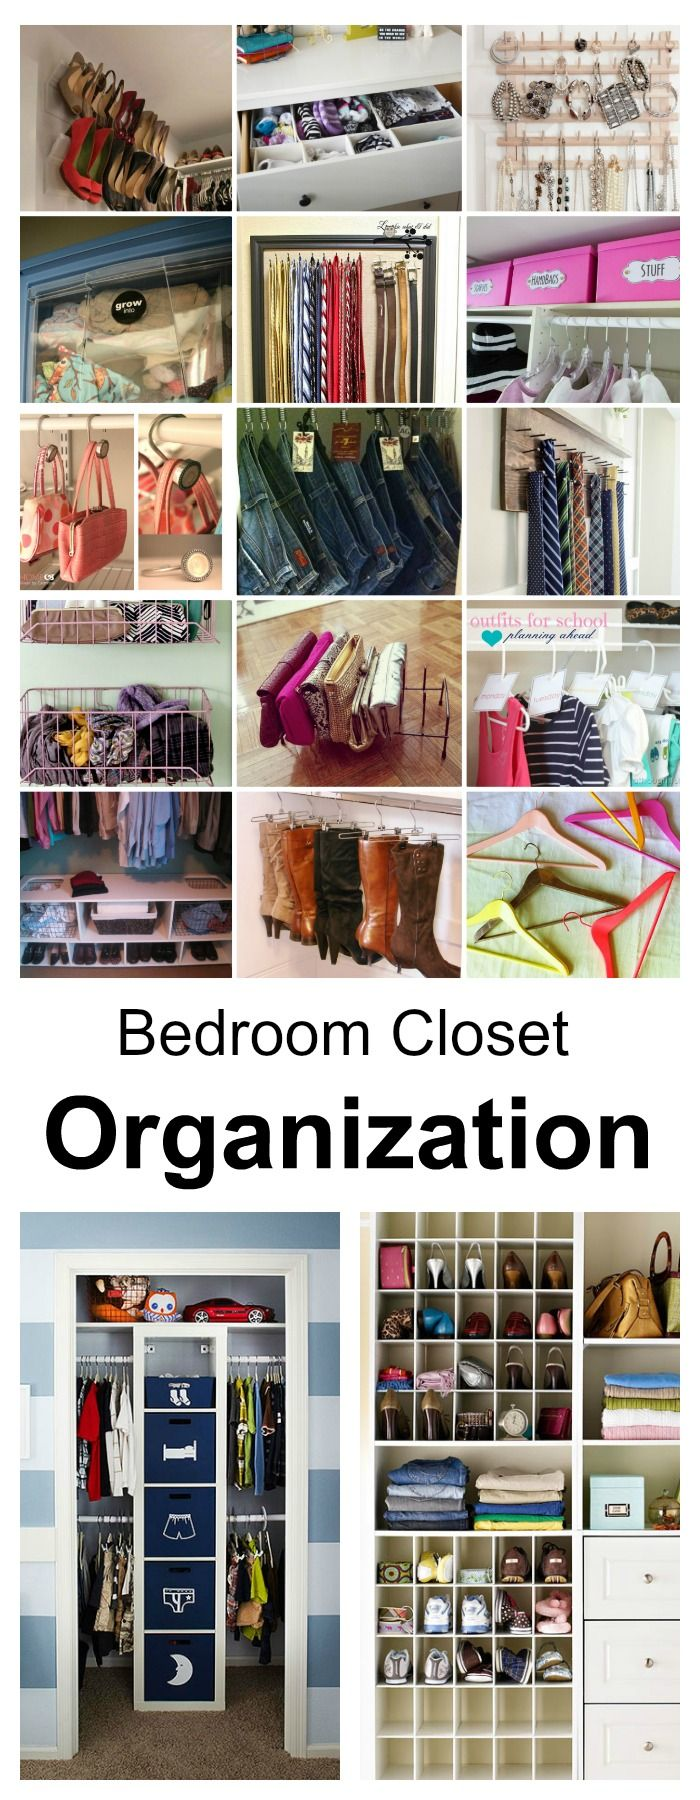 77 Best Room Organization Master Closet Images On Pinterest Walk In Closet Bedroom Cupboards